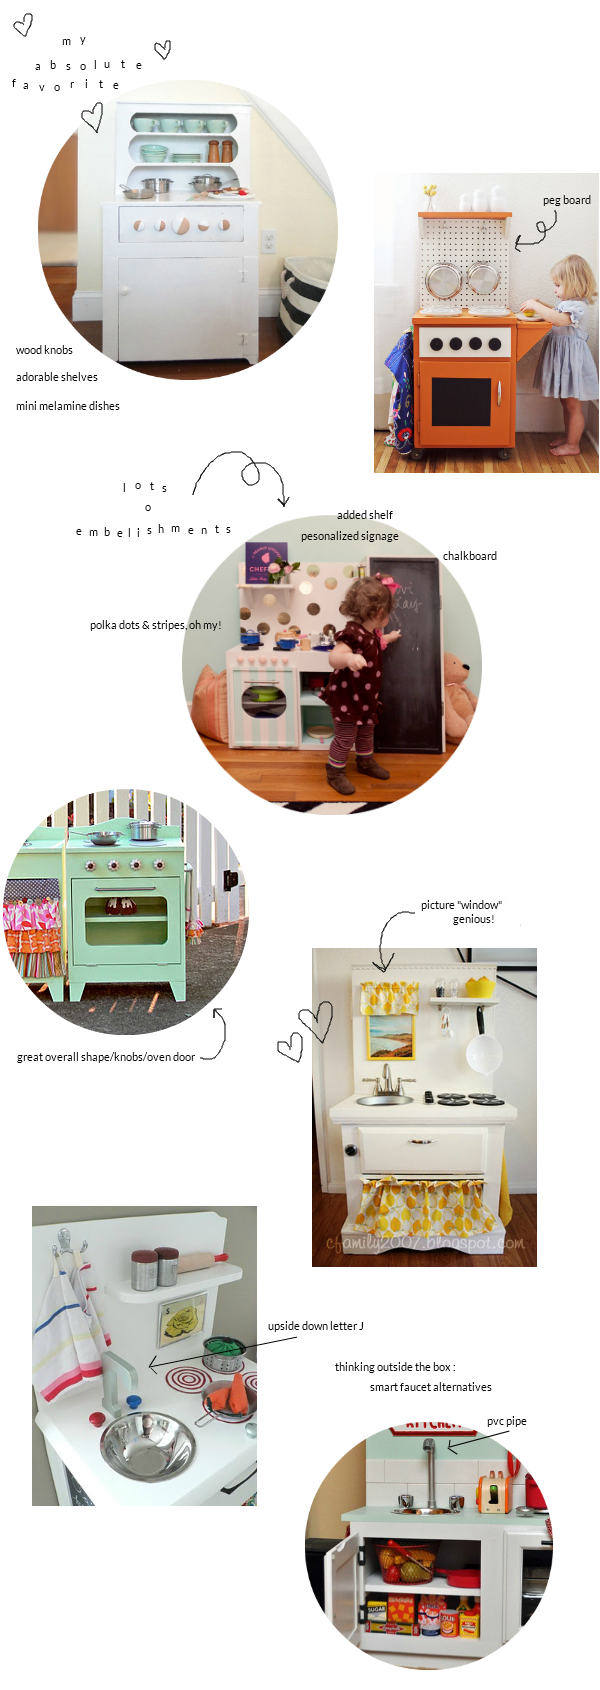 diy play kitchen inspiration | andrea jennison interiors | my [old